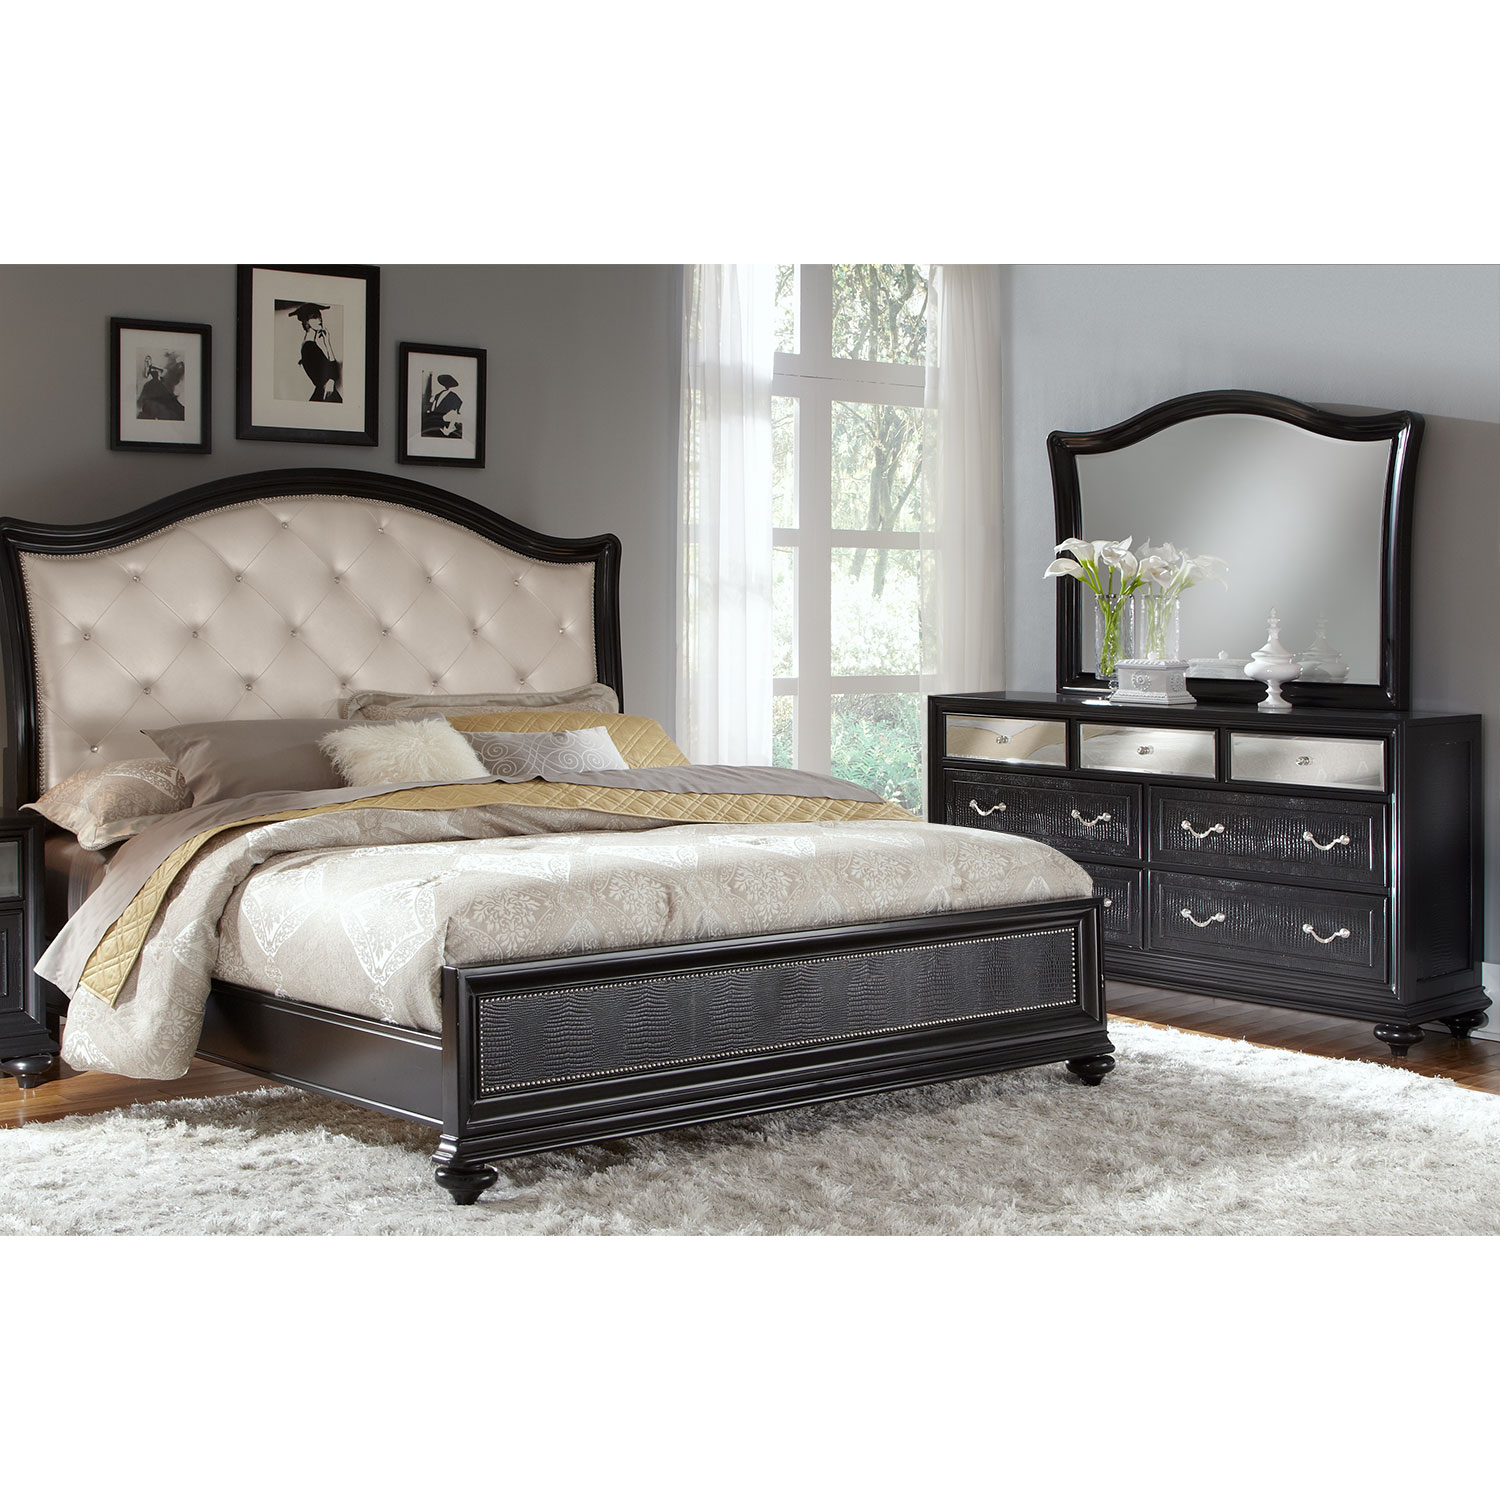 Hover to zoom Marilyn 5 Piece Queen Bedroom Set  Ebony Value City Furniture